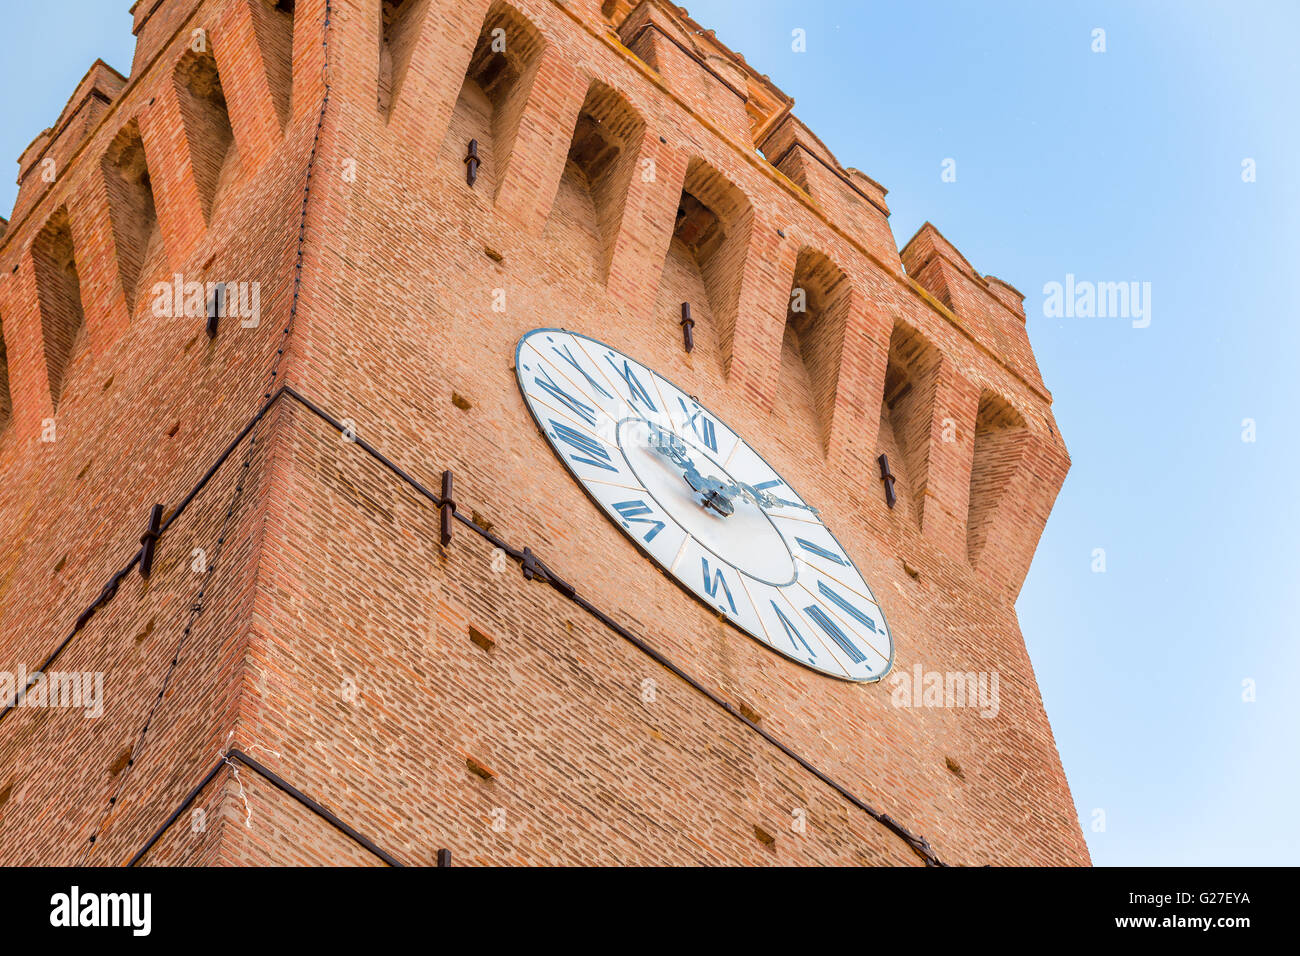 clock tower with Ghibelline battlements and buttresses - Stock Image